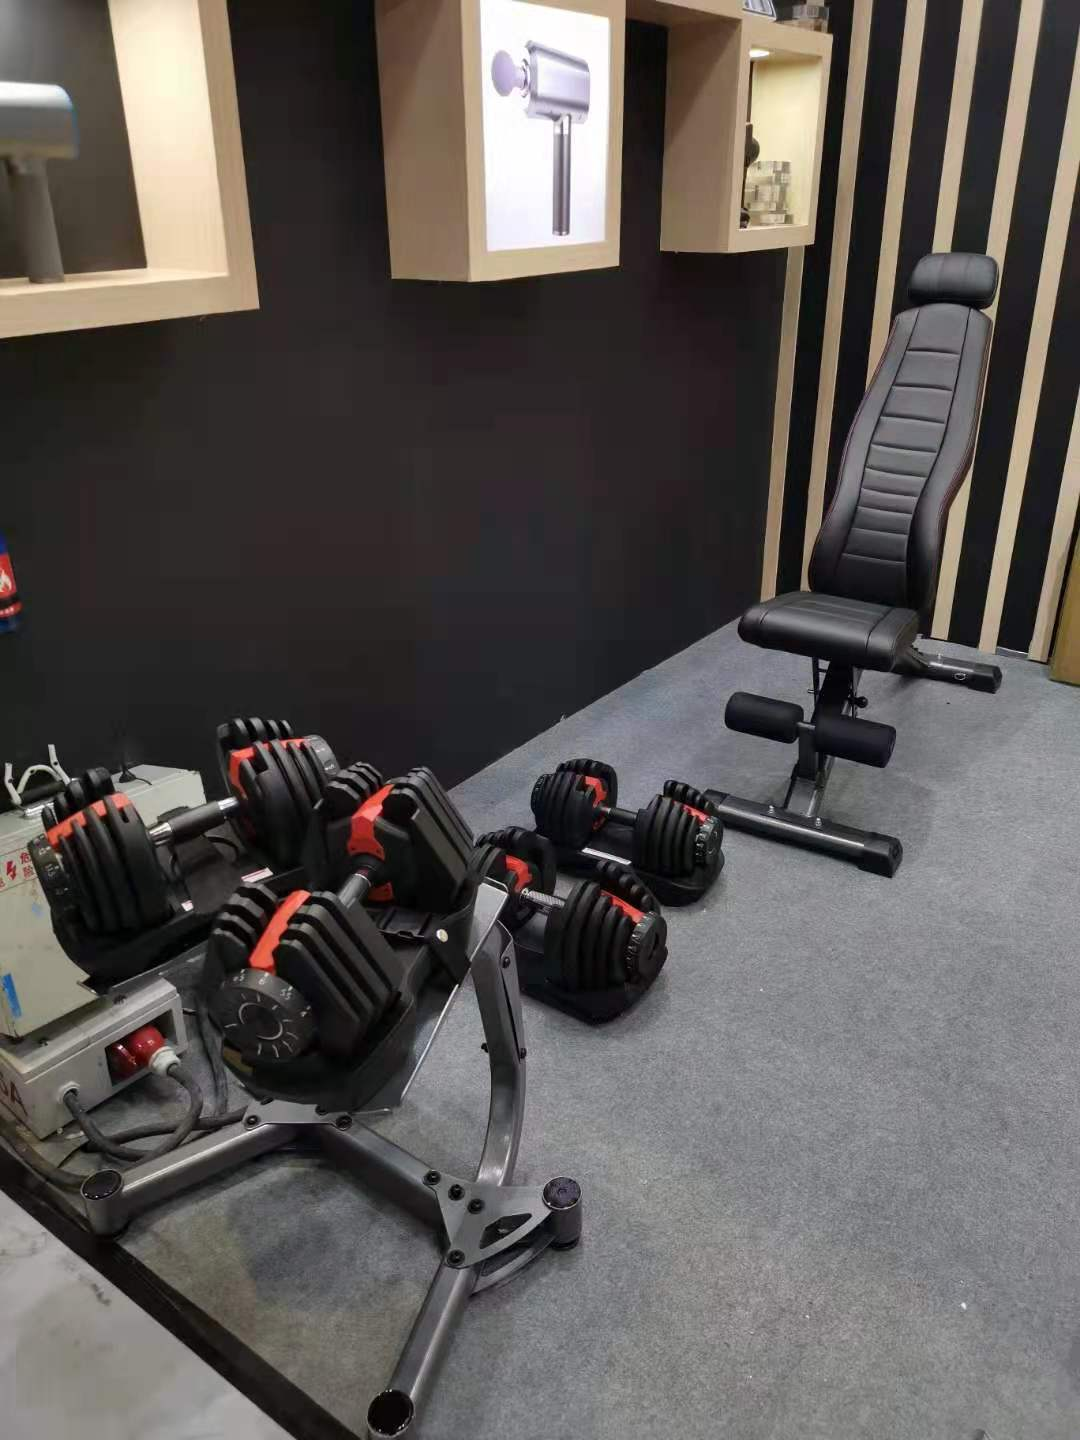 2021 New Arrival High Quality Adjustable Bench Dumbbell Bench for Body Exercise Gym Equipment